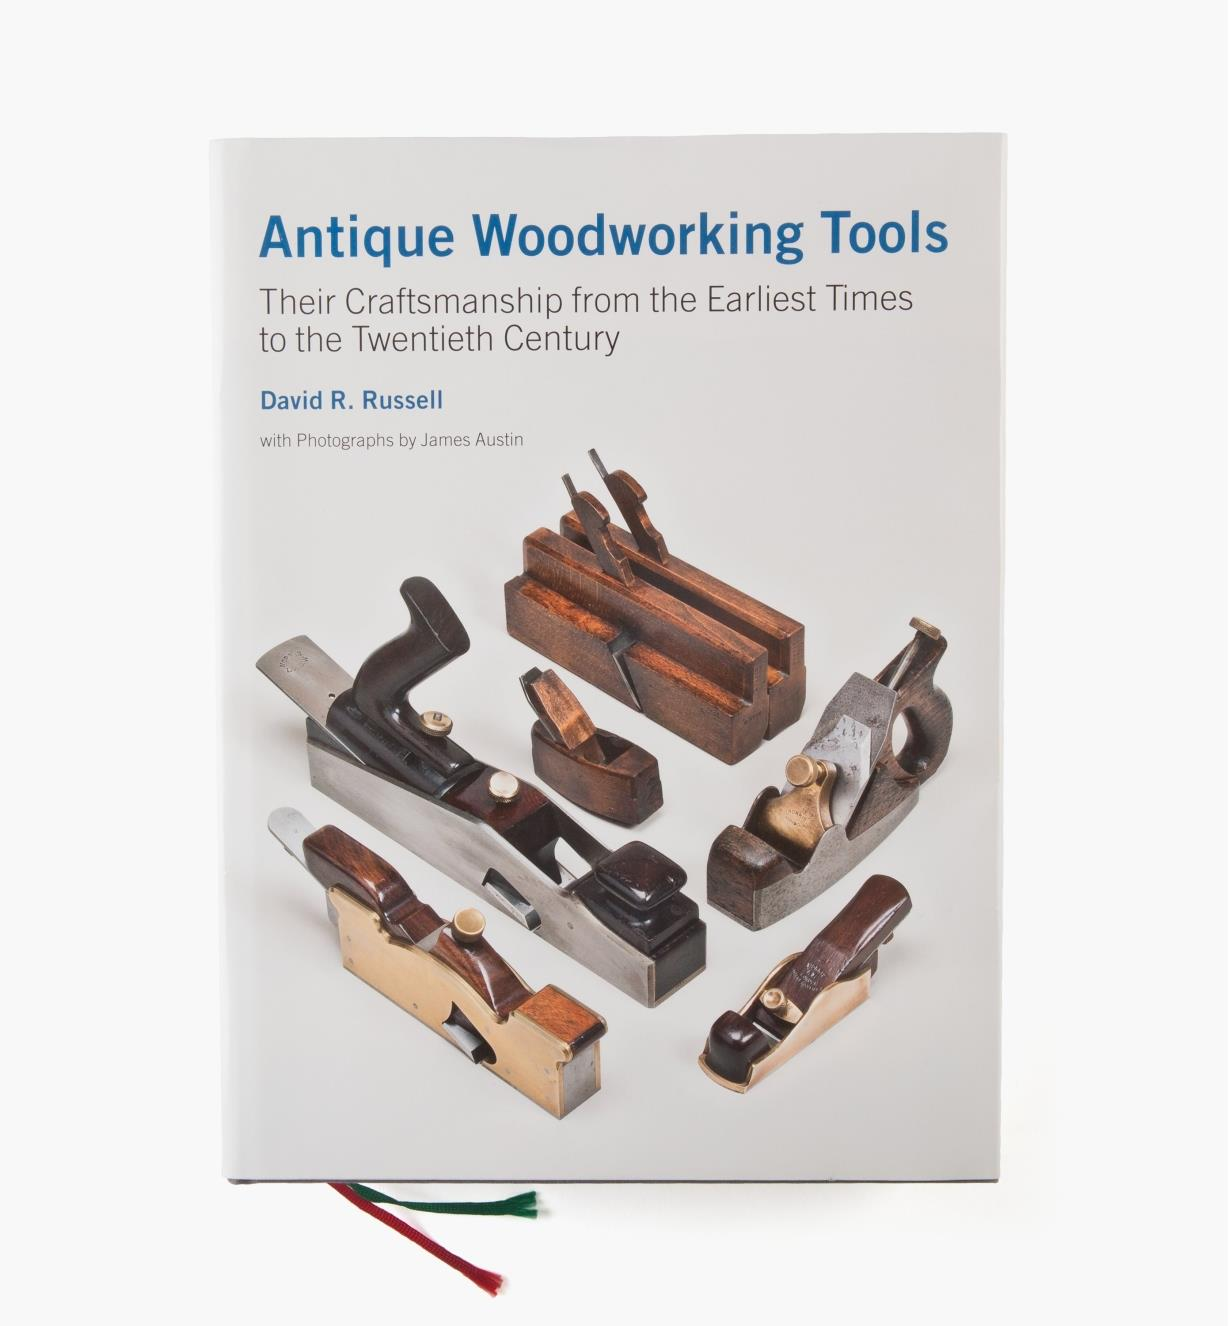 Antique Woodworking Tools - Lee Valley Tools